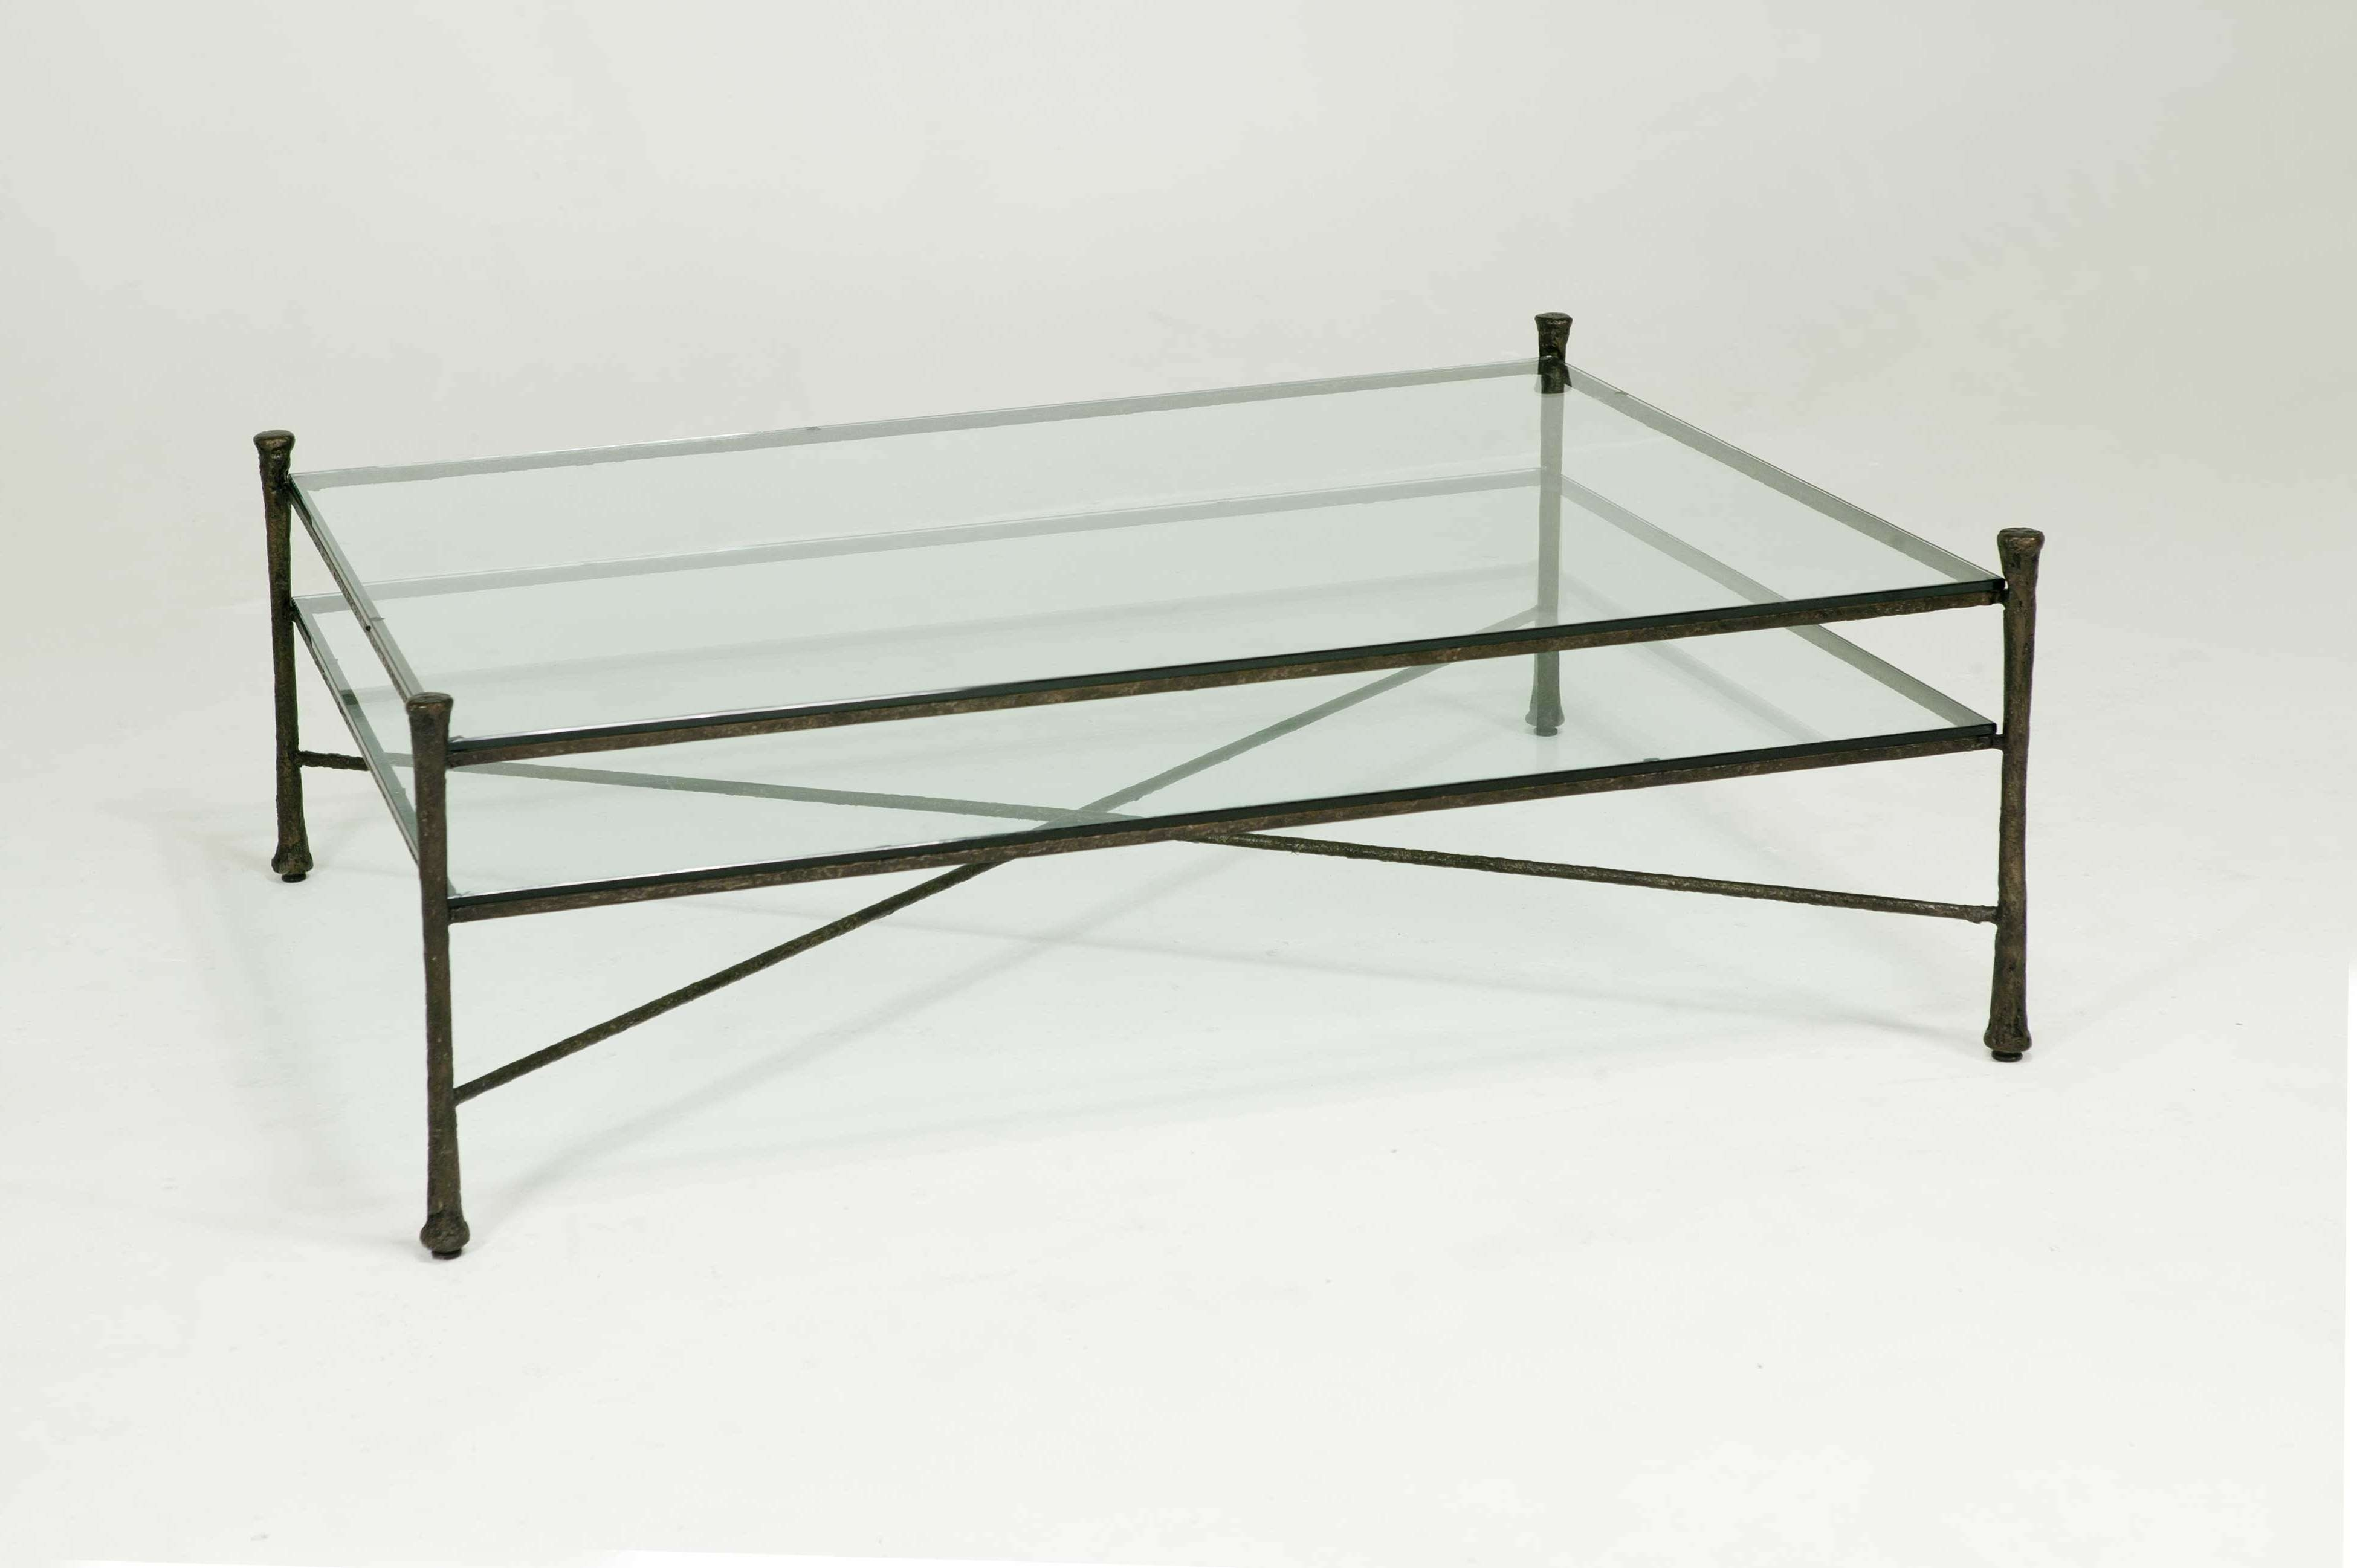 Well Known Glass Coffee Table With Shelf Intended For Coffee Table : Marvelous Ikea Folding Table Ikea Desk Shelf Coffee (View 8 of 20)